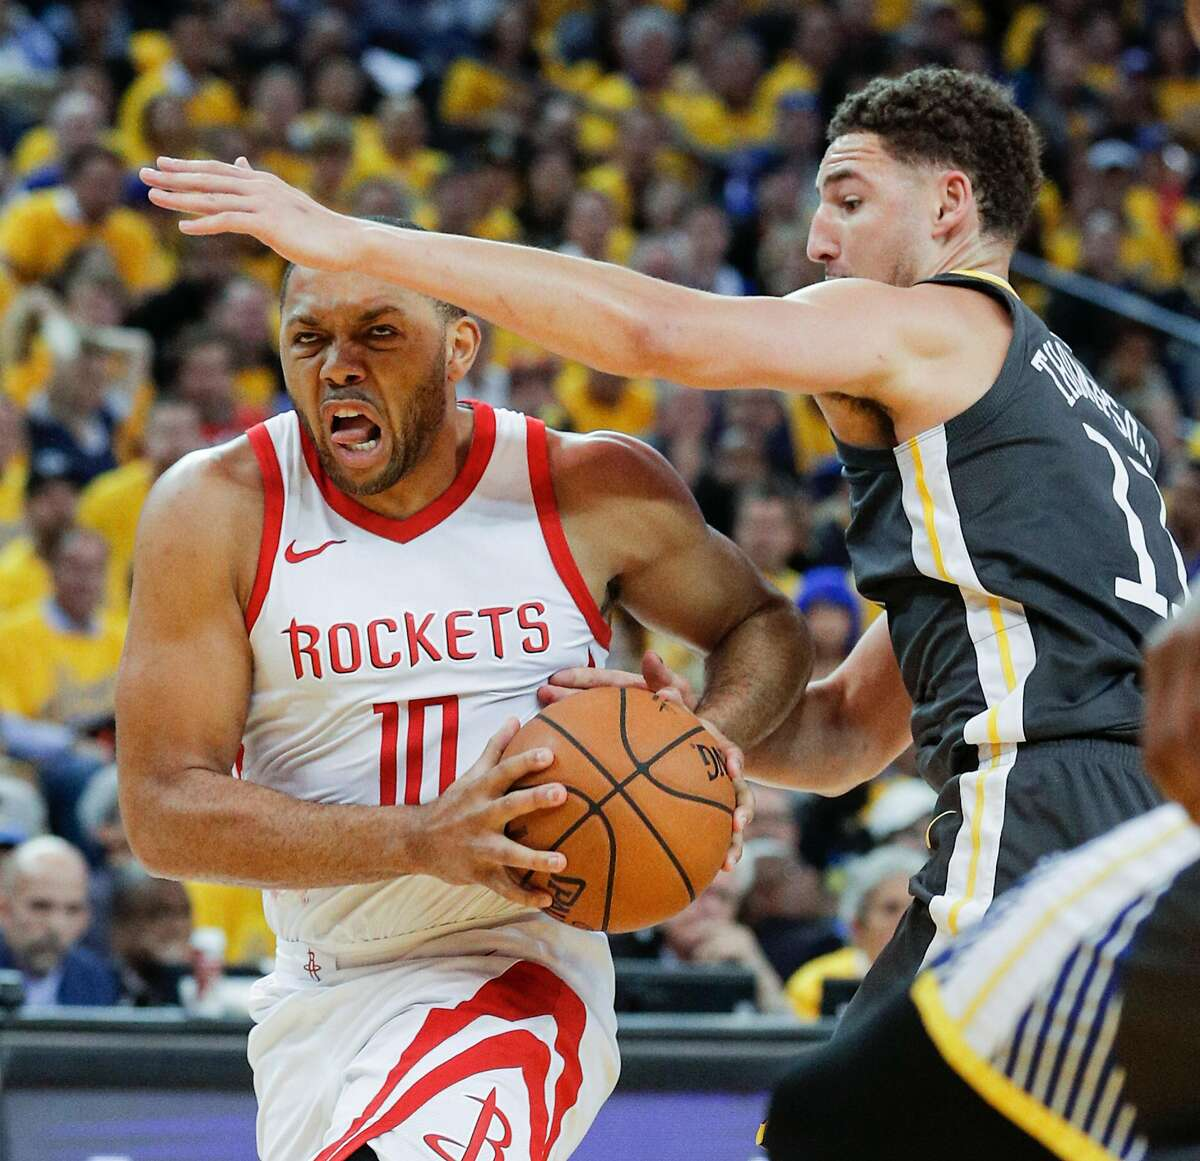 Houston Rockets' Eric Gordon tries to get past Golden State Warriors' Klay Thompson in the third quarter during game 4 of the Western Conference Finals between the Golden State Warriors and the Houston Rockets at Oracle Arena on Tuesday, May 22, 2018 in Oakland, Calif.